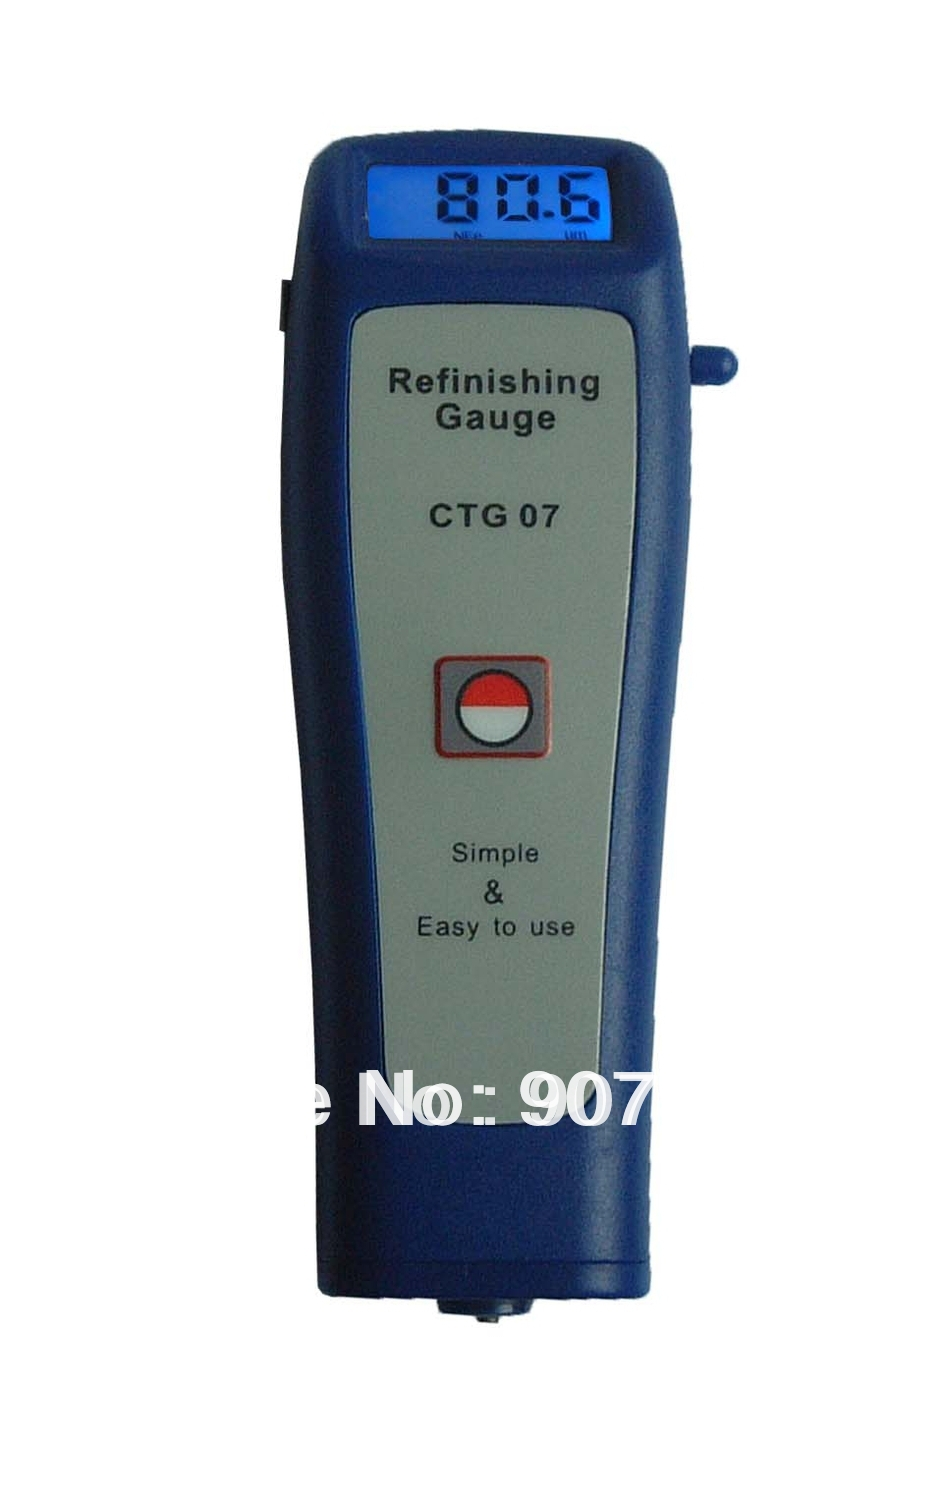 New CTG-07 Digital Coating Thickness Gauge Paint Meter Tester Built in F + NF Probes 0.0 - 1250 um/0.0 - 50 mil<br><br>Aliexpress